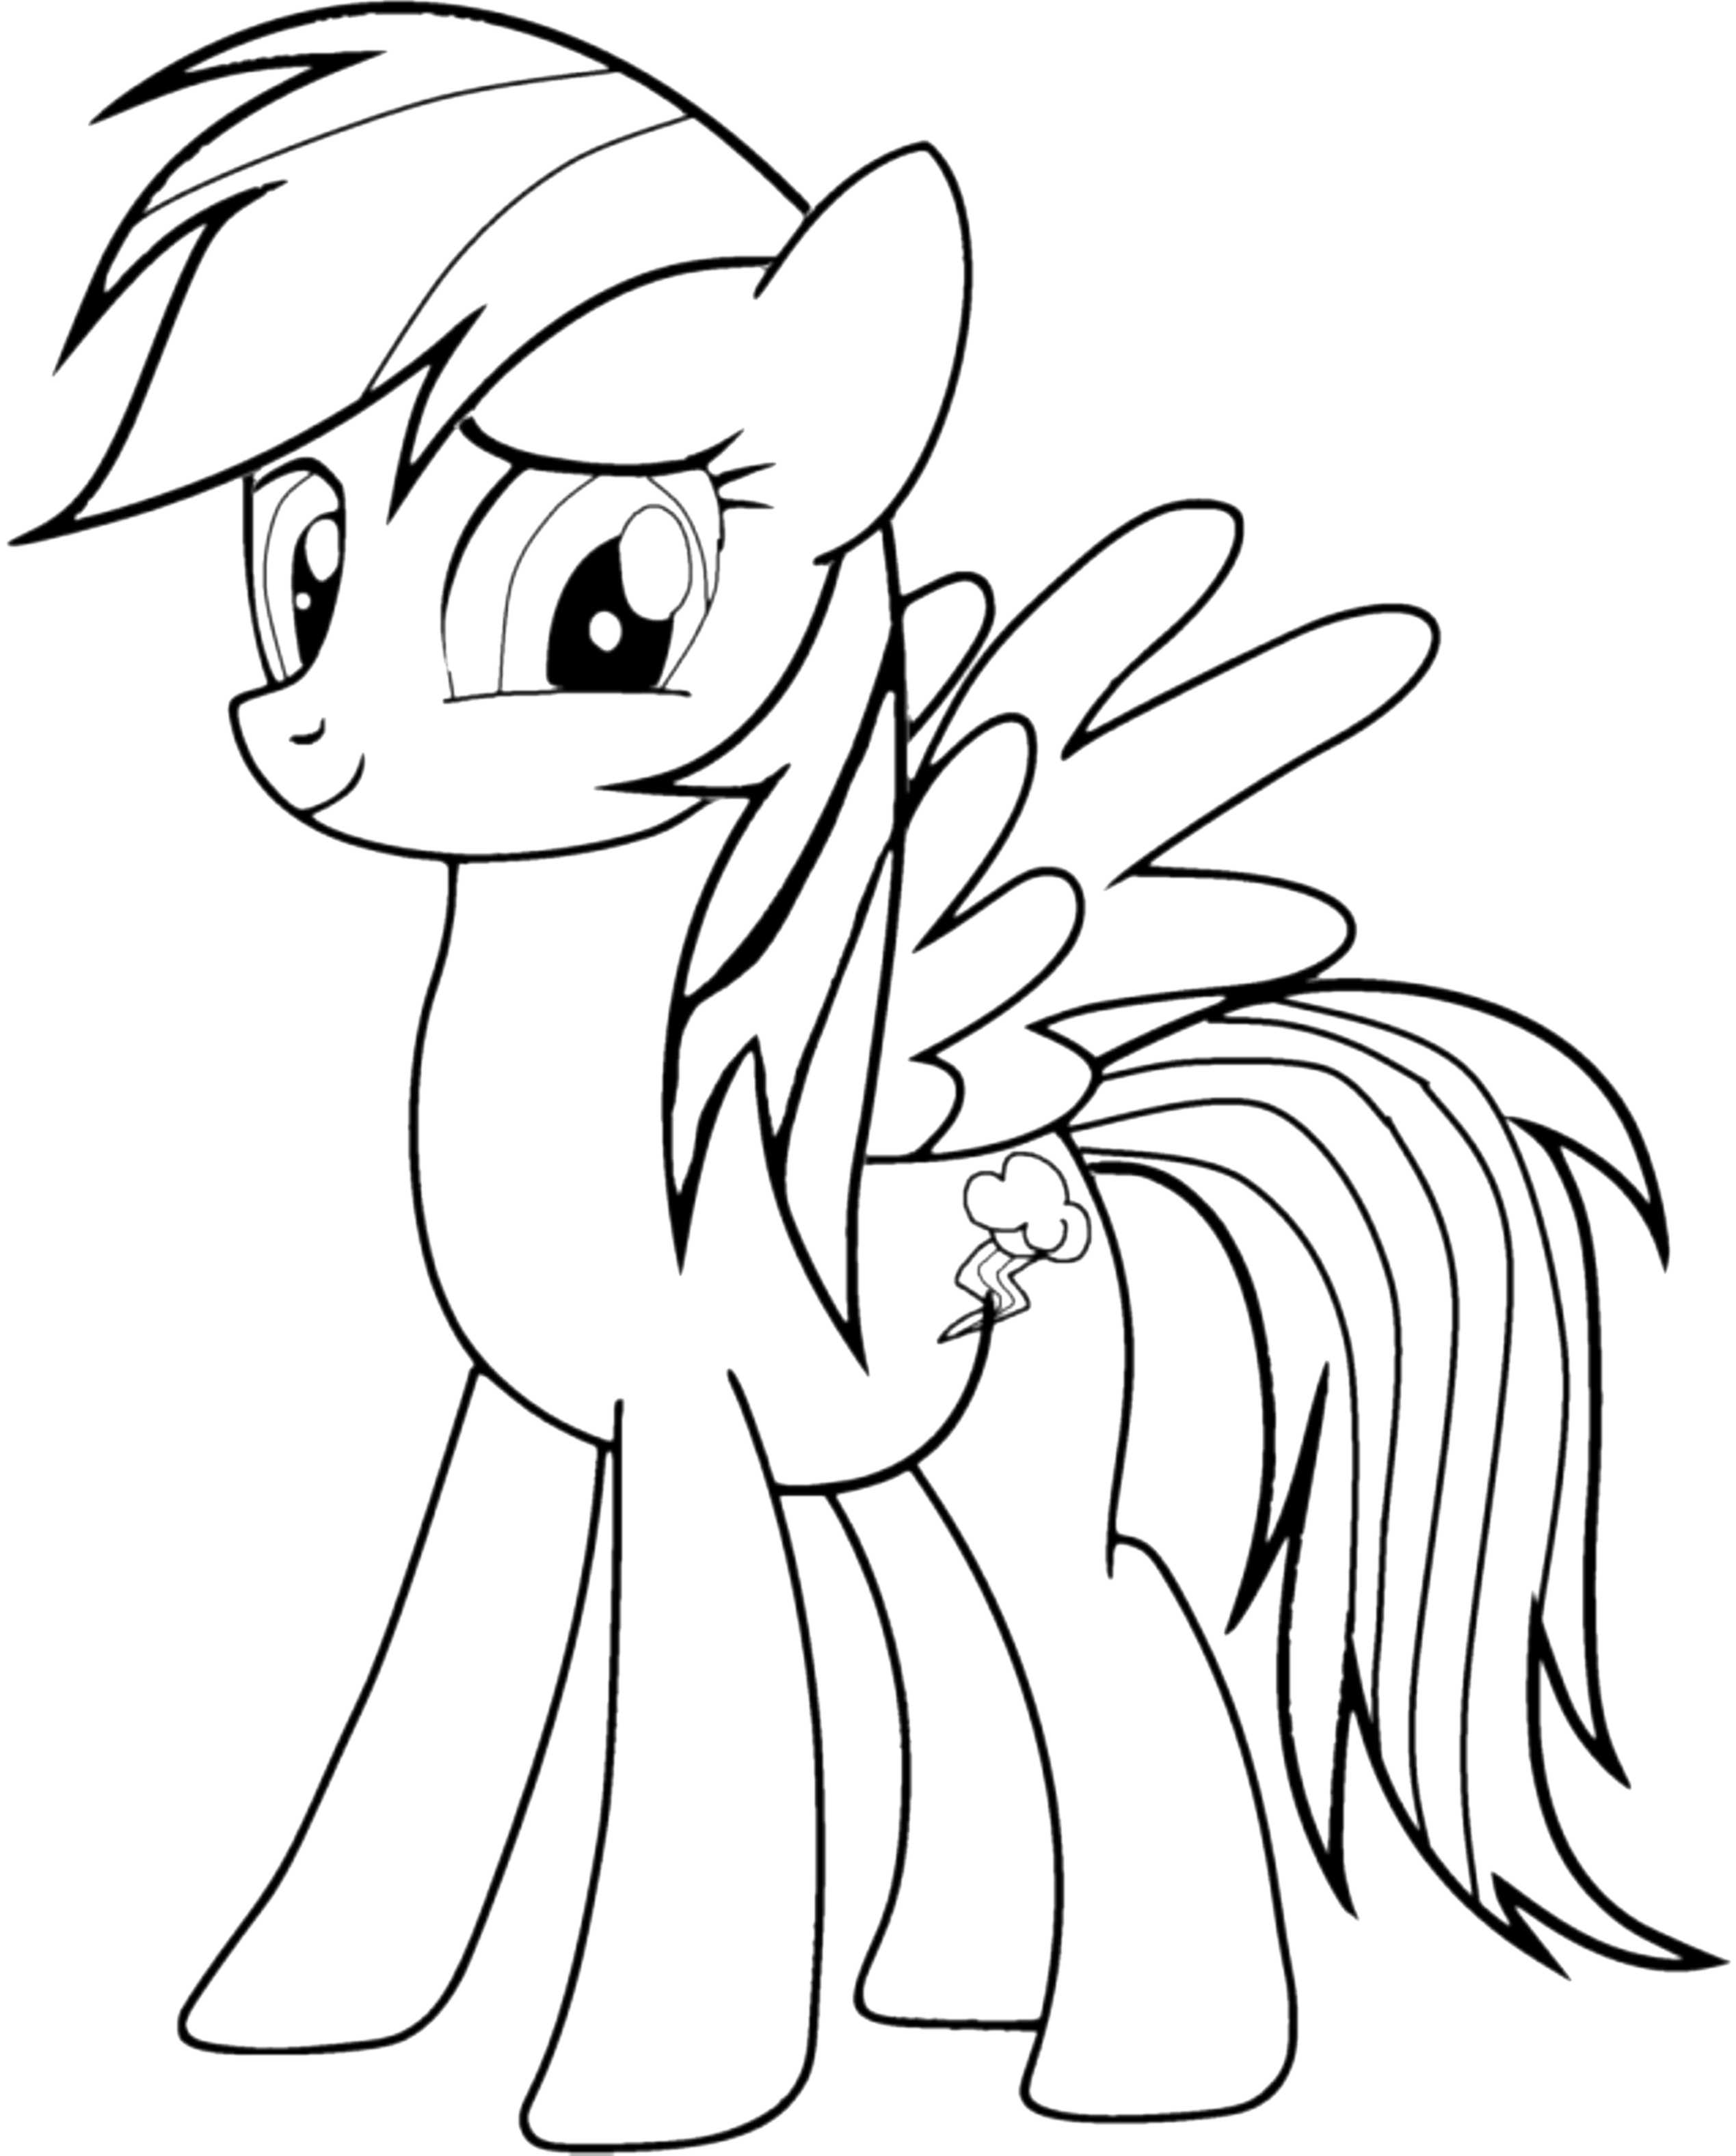 rainbow dash coloring pictures print download colorful rainbow dash coloring pages to rainbow pictures dash coloring